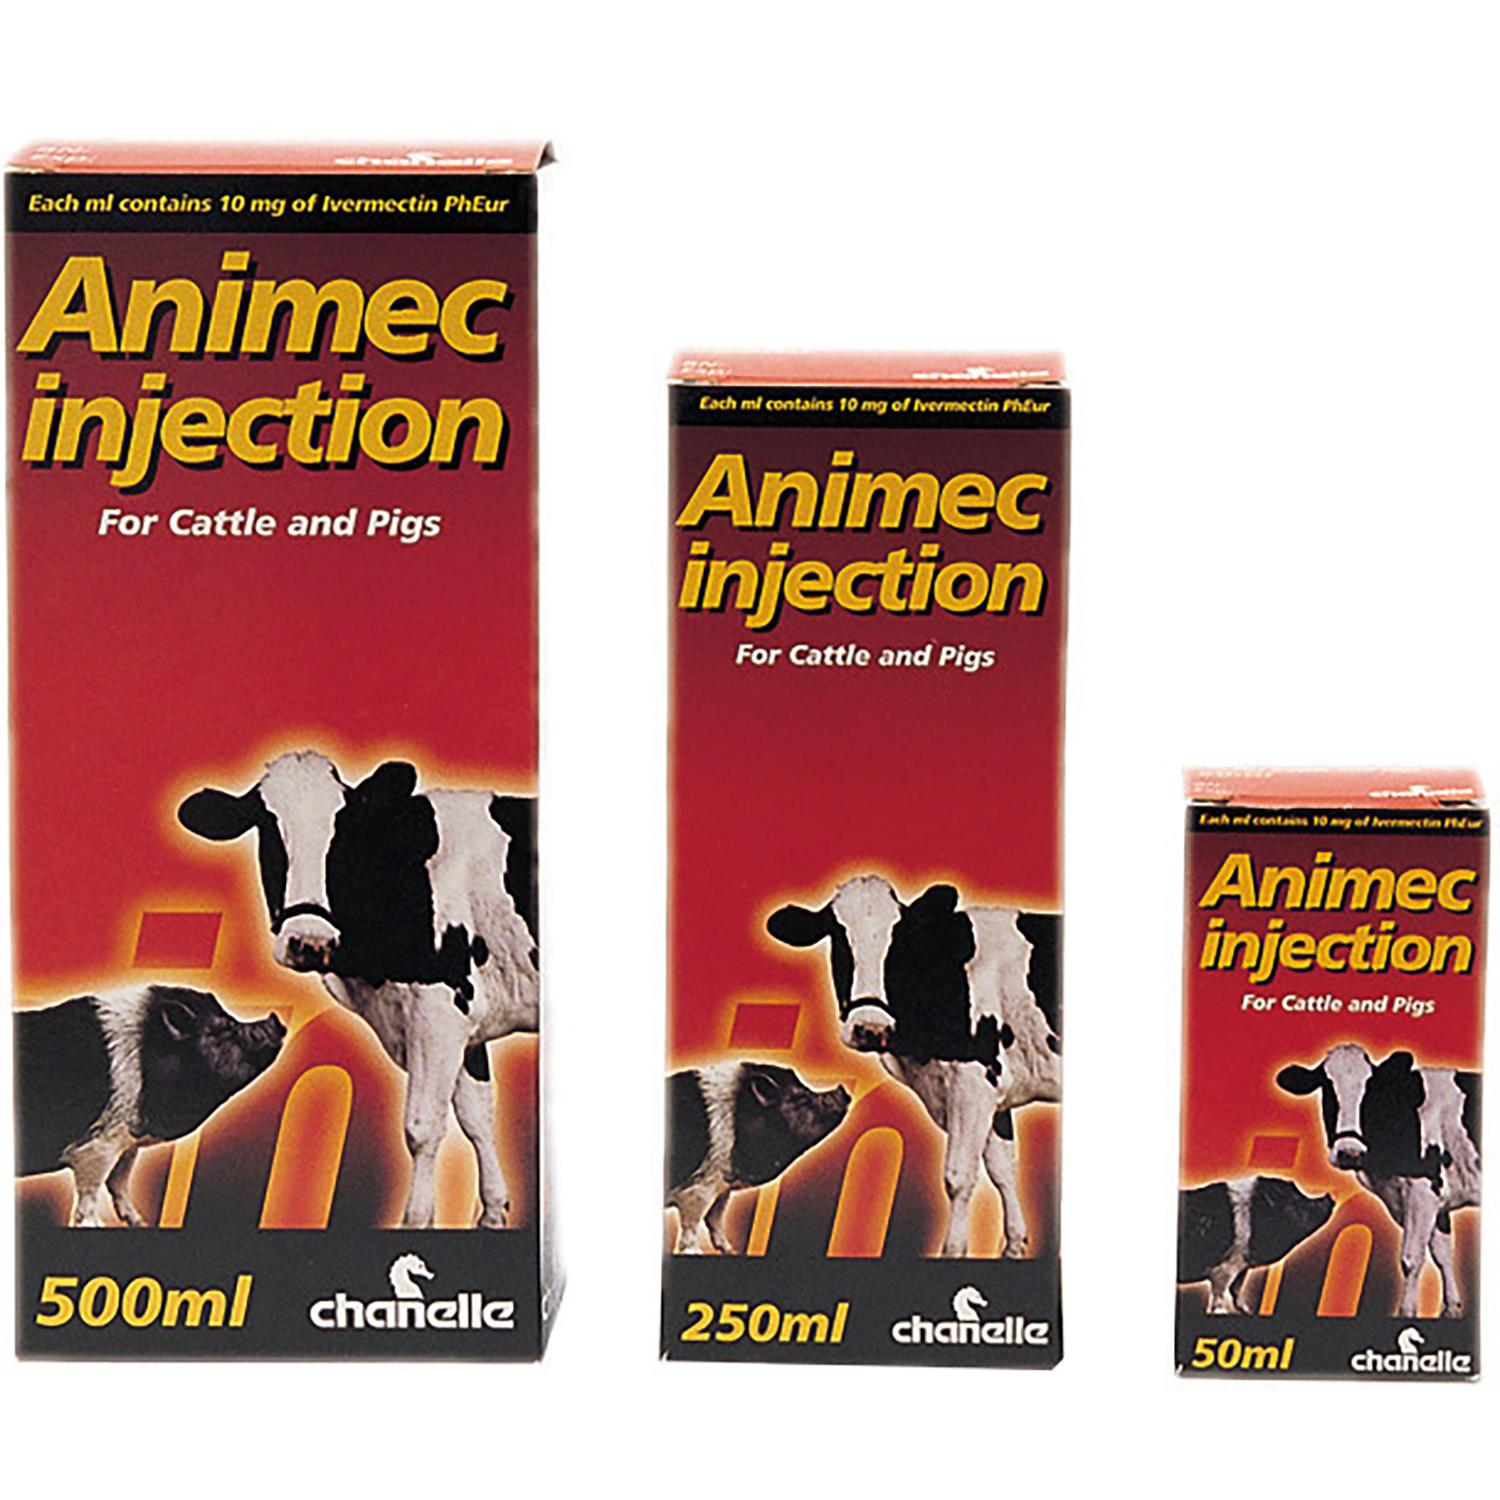 IVERMECTIN INJECTION'S